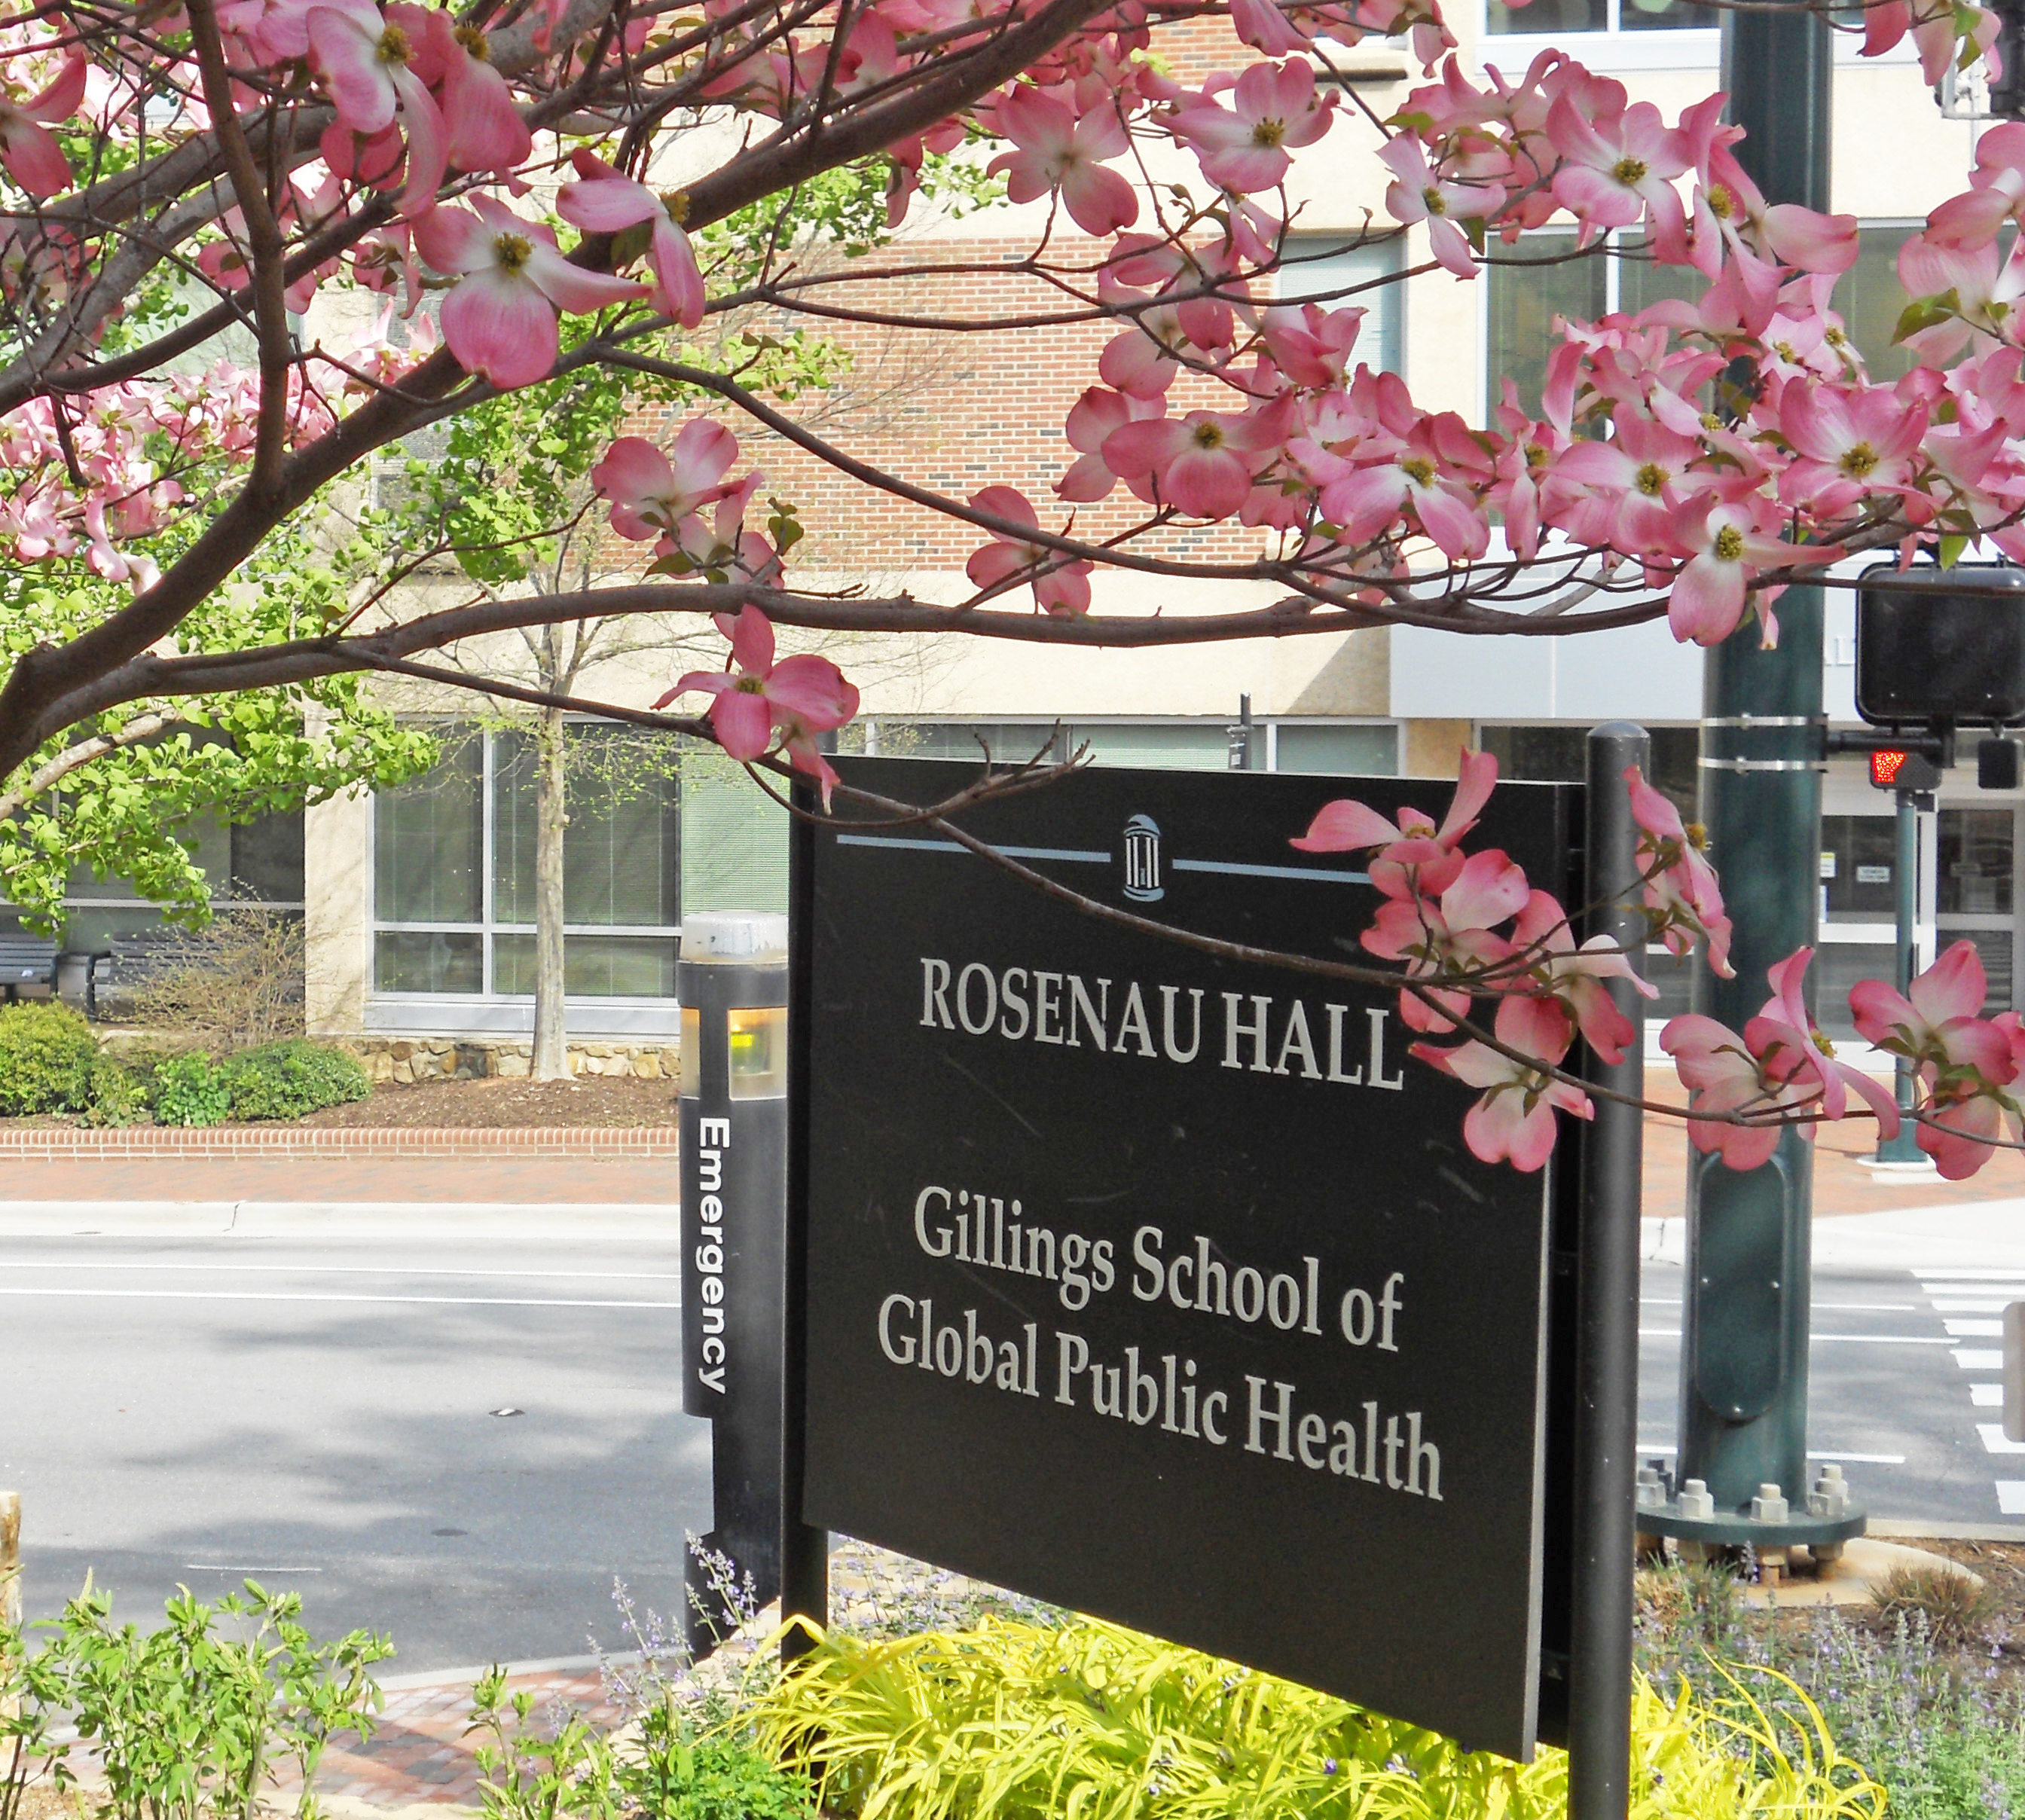 Dogwoods, North Carolina's state flower, blossom around a sign at the entrance to the Gillings School.